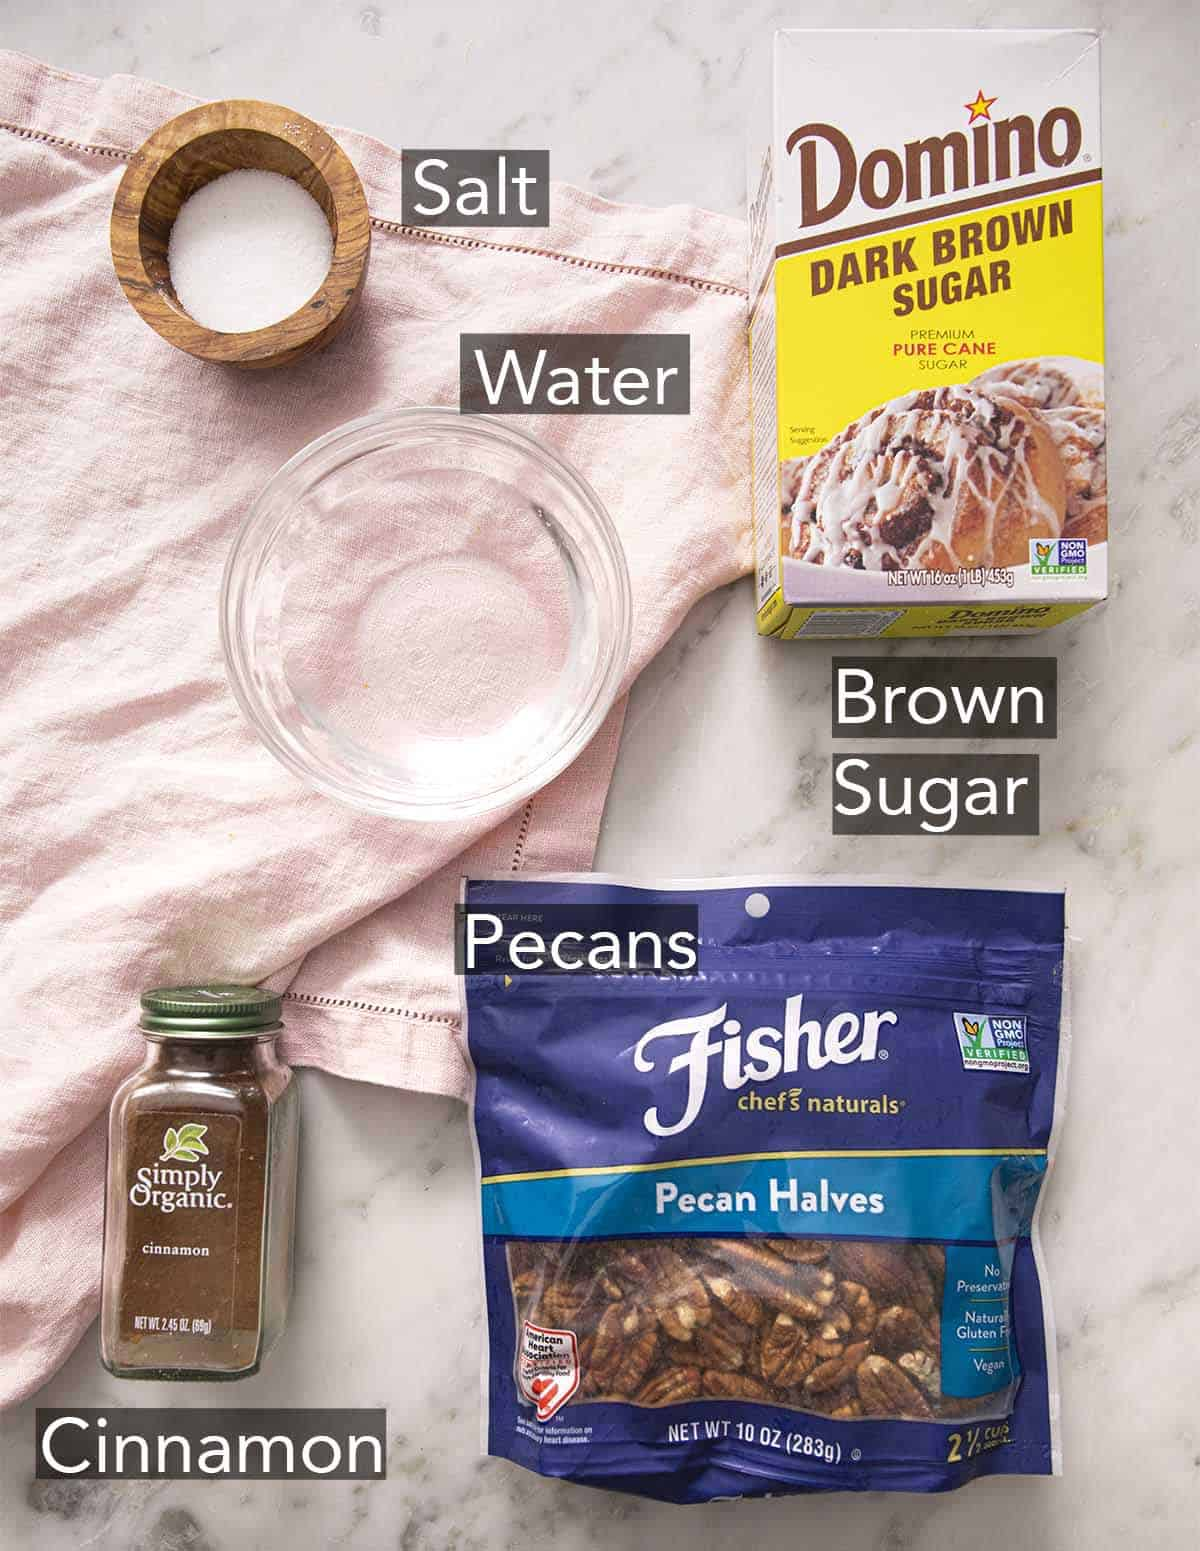 Ingredients to make candied pecans laying on a marble counter.